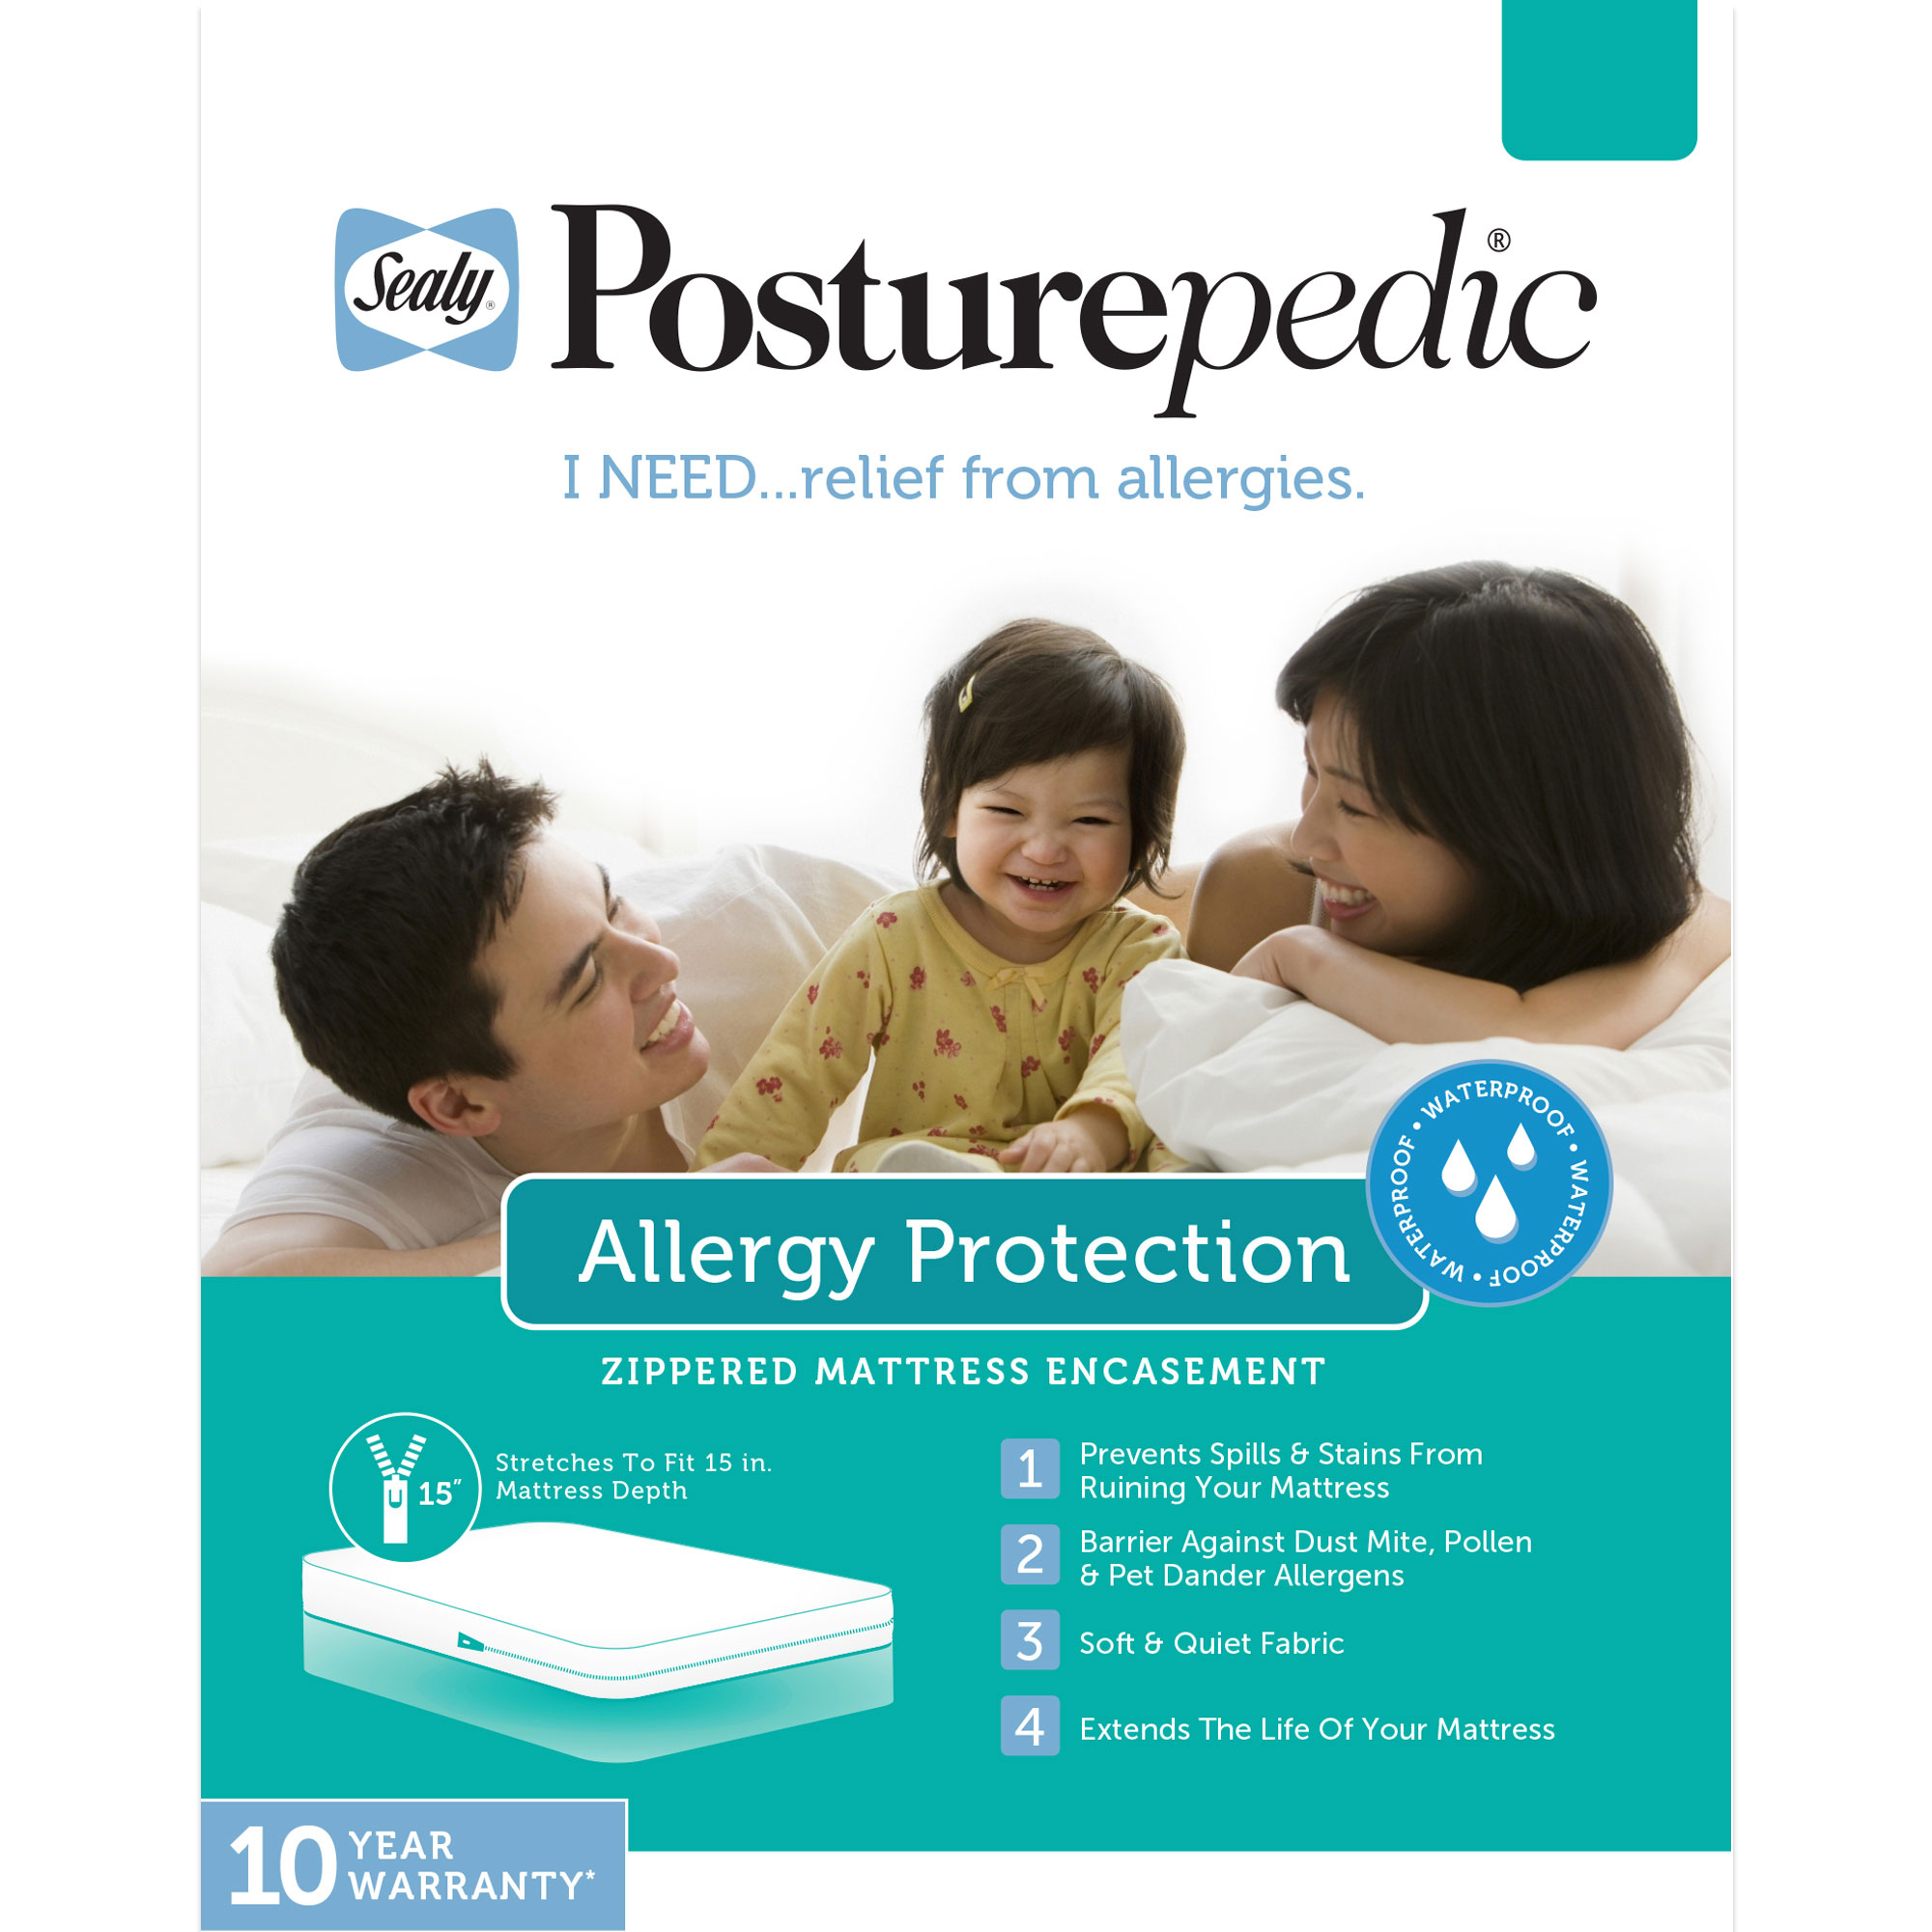 Sealy Posturepedic Allergy Protection Zippered Mattress Encasement